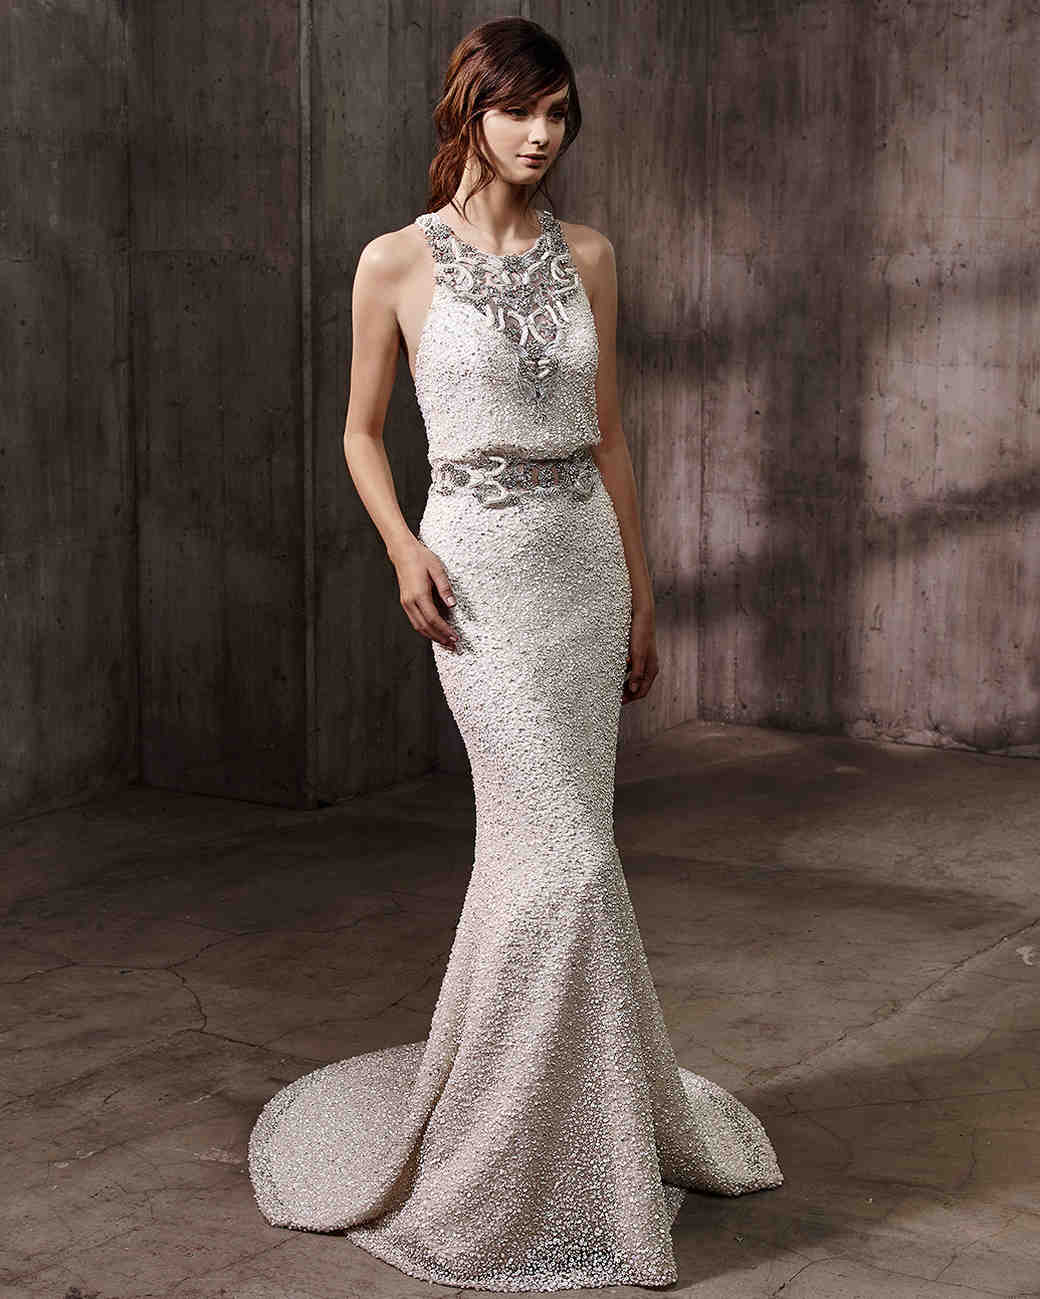 Badgley mischka fall 2017 wedding dress collection for Wedding dress badgley mischka